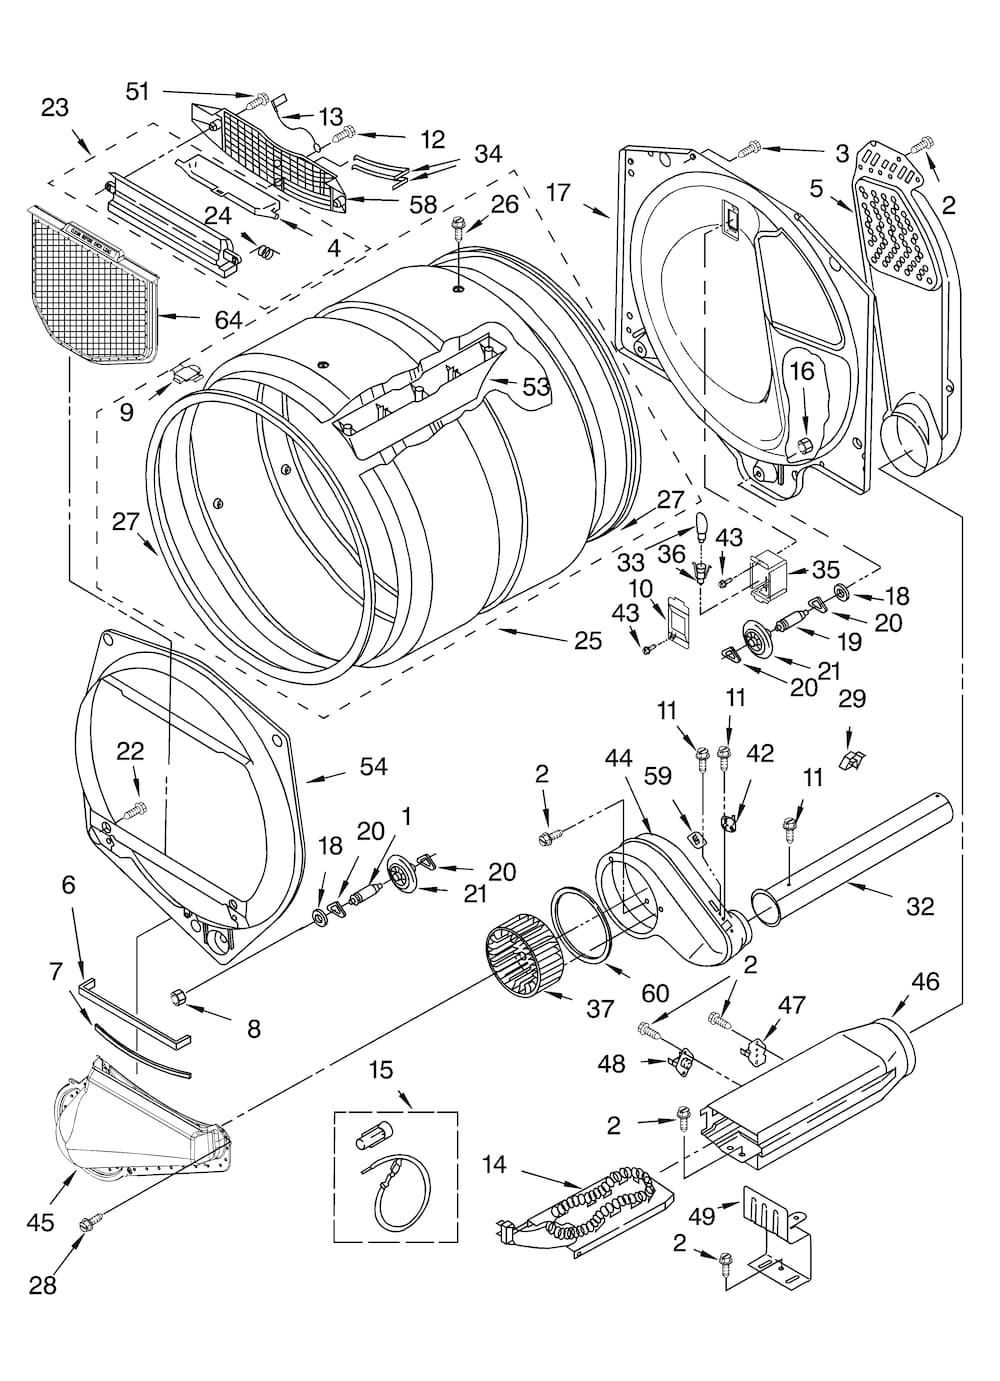 Kenmore Residential Dryer Parts | Model 11064892401 | Sears within Kenmore 90 Series Dryer Parts Diagram